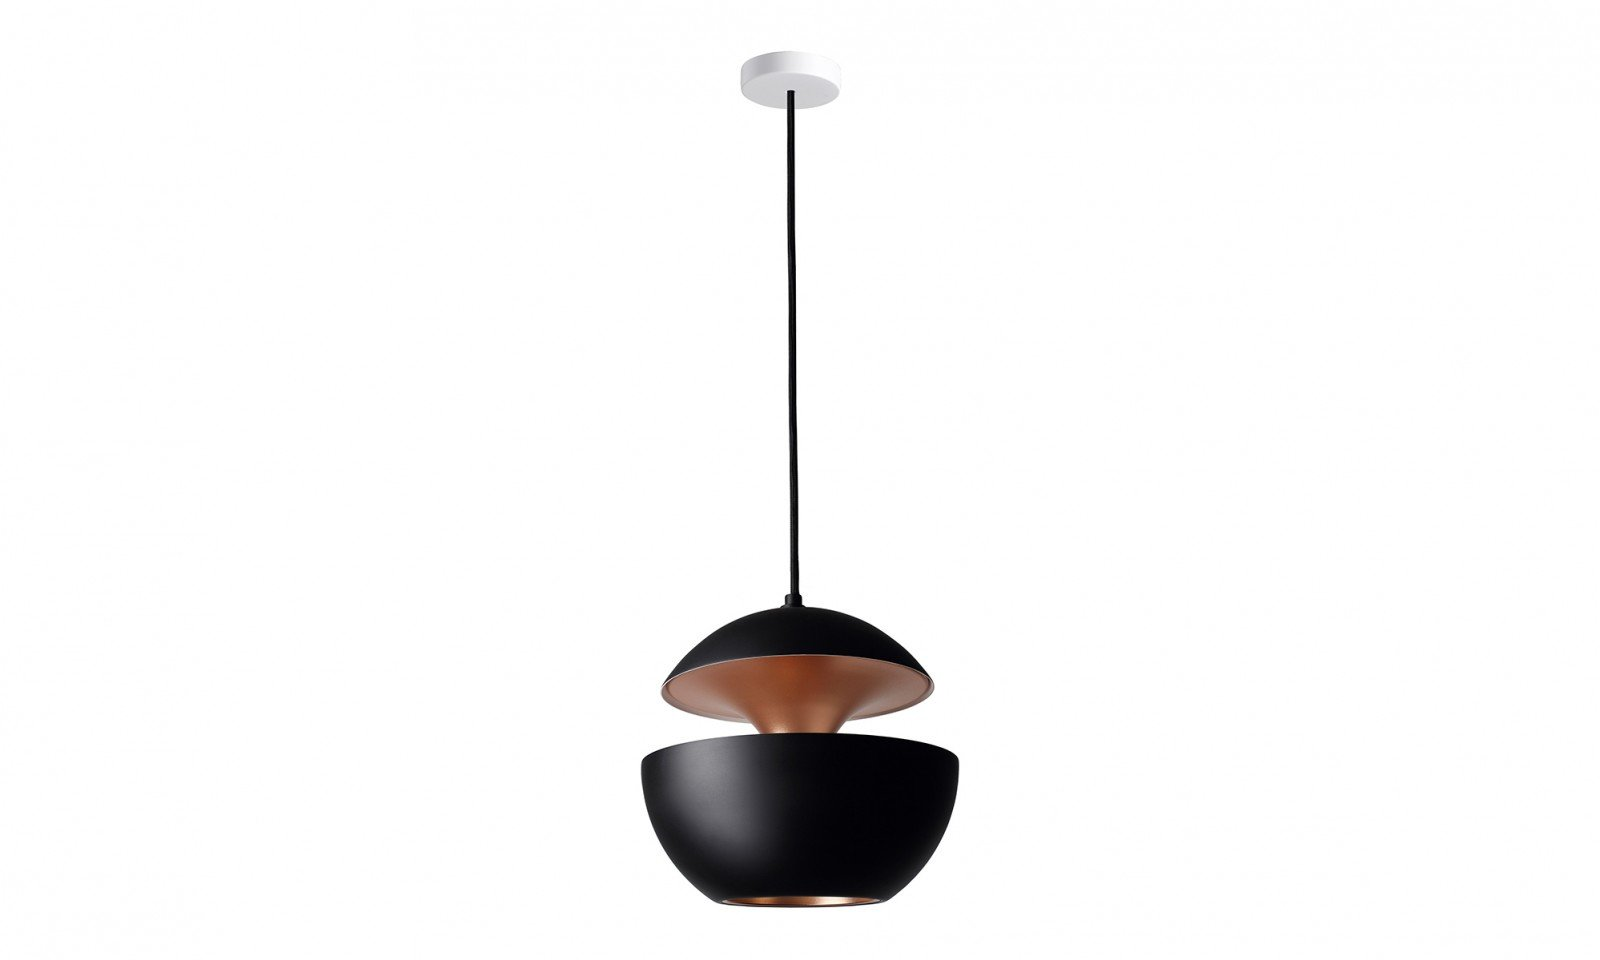 25cm Aluminium Globe Pendant In Black & Copper - ID 7996